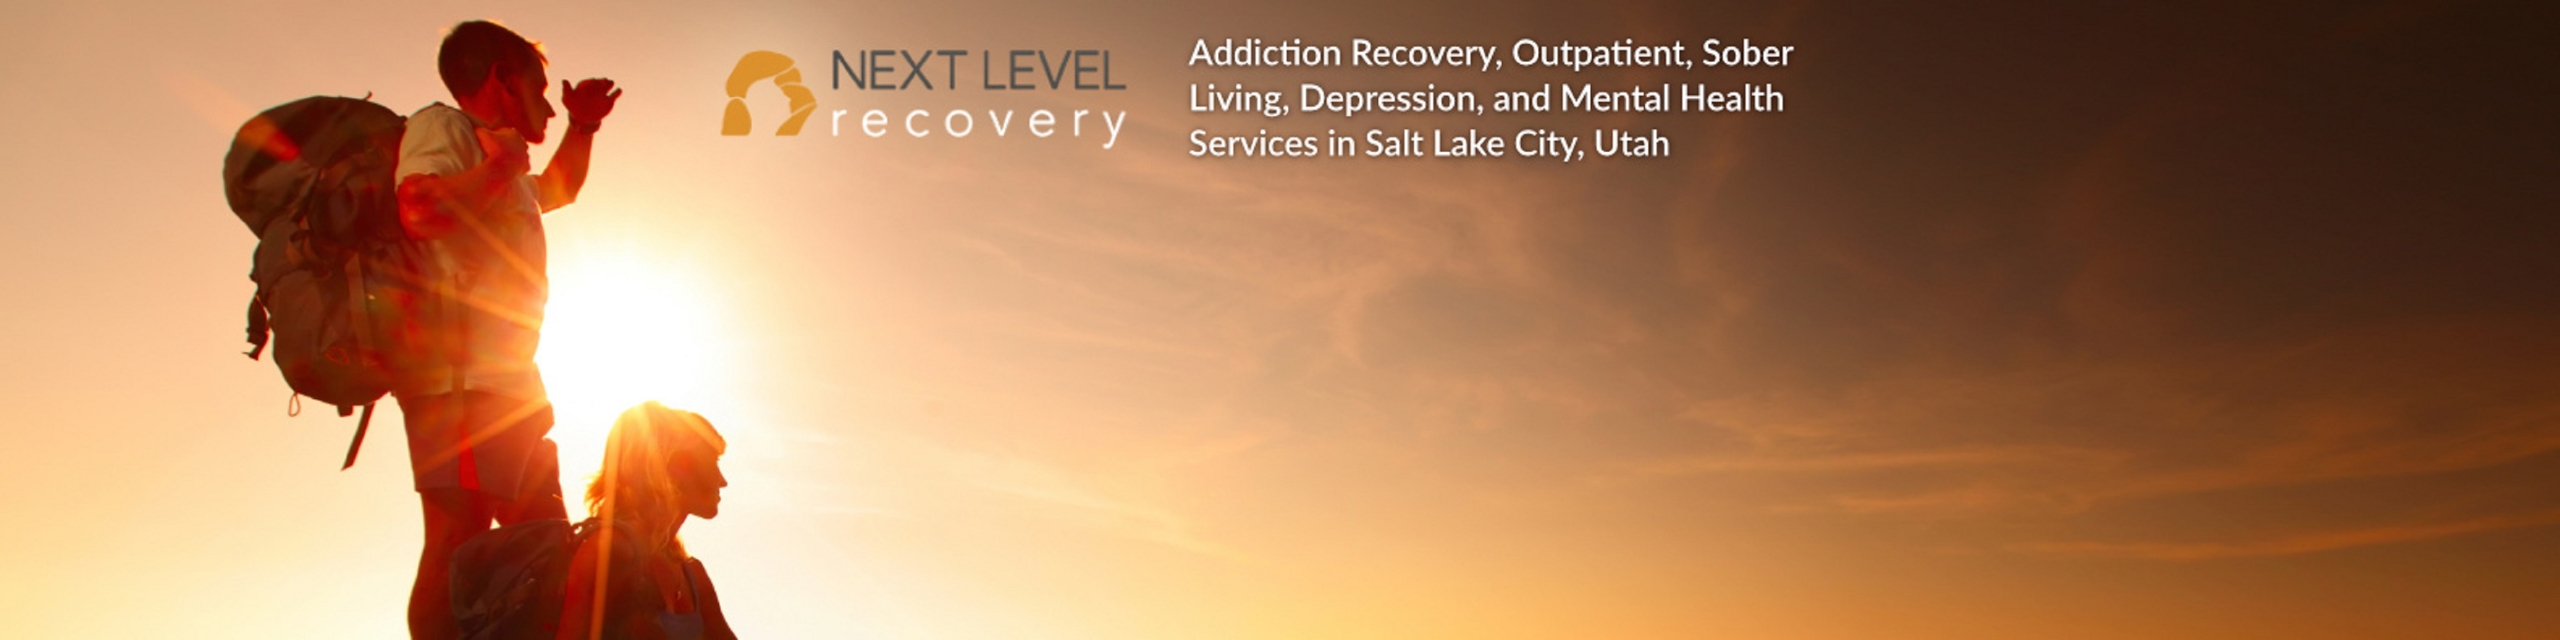 Next Level Recovery (@nextlevelrecovery) Cover Image